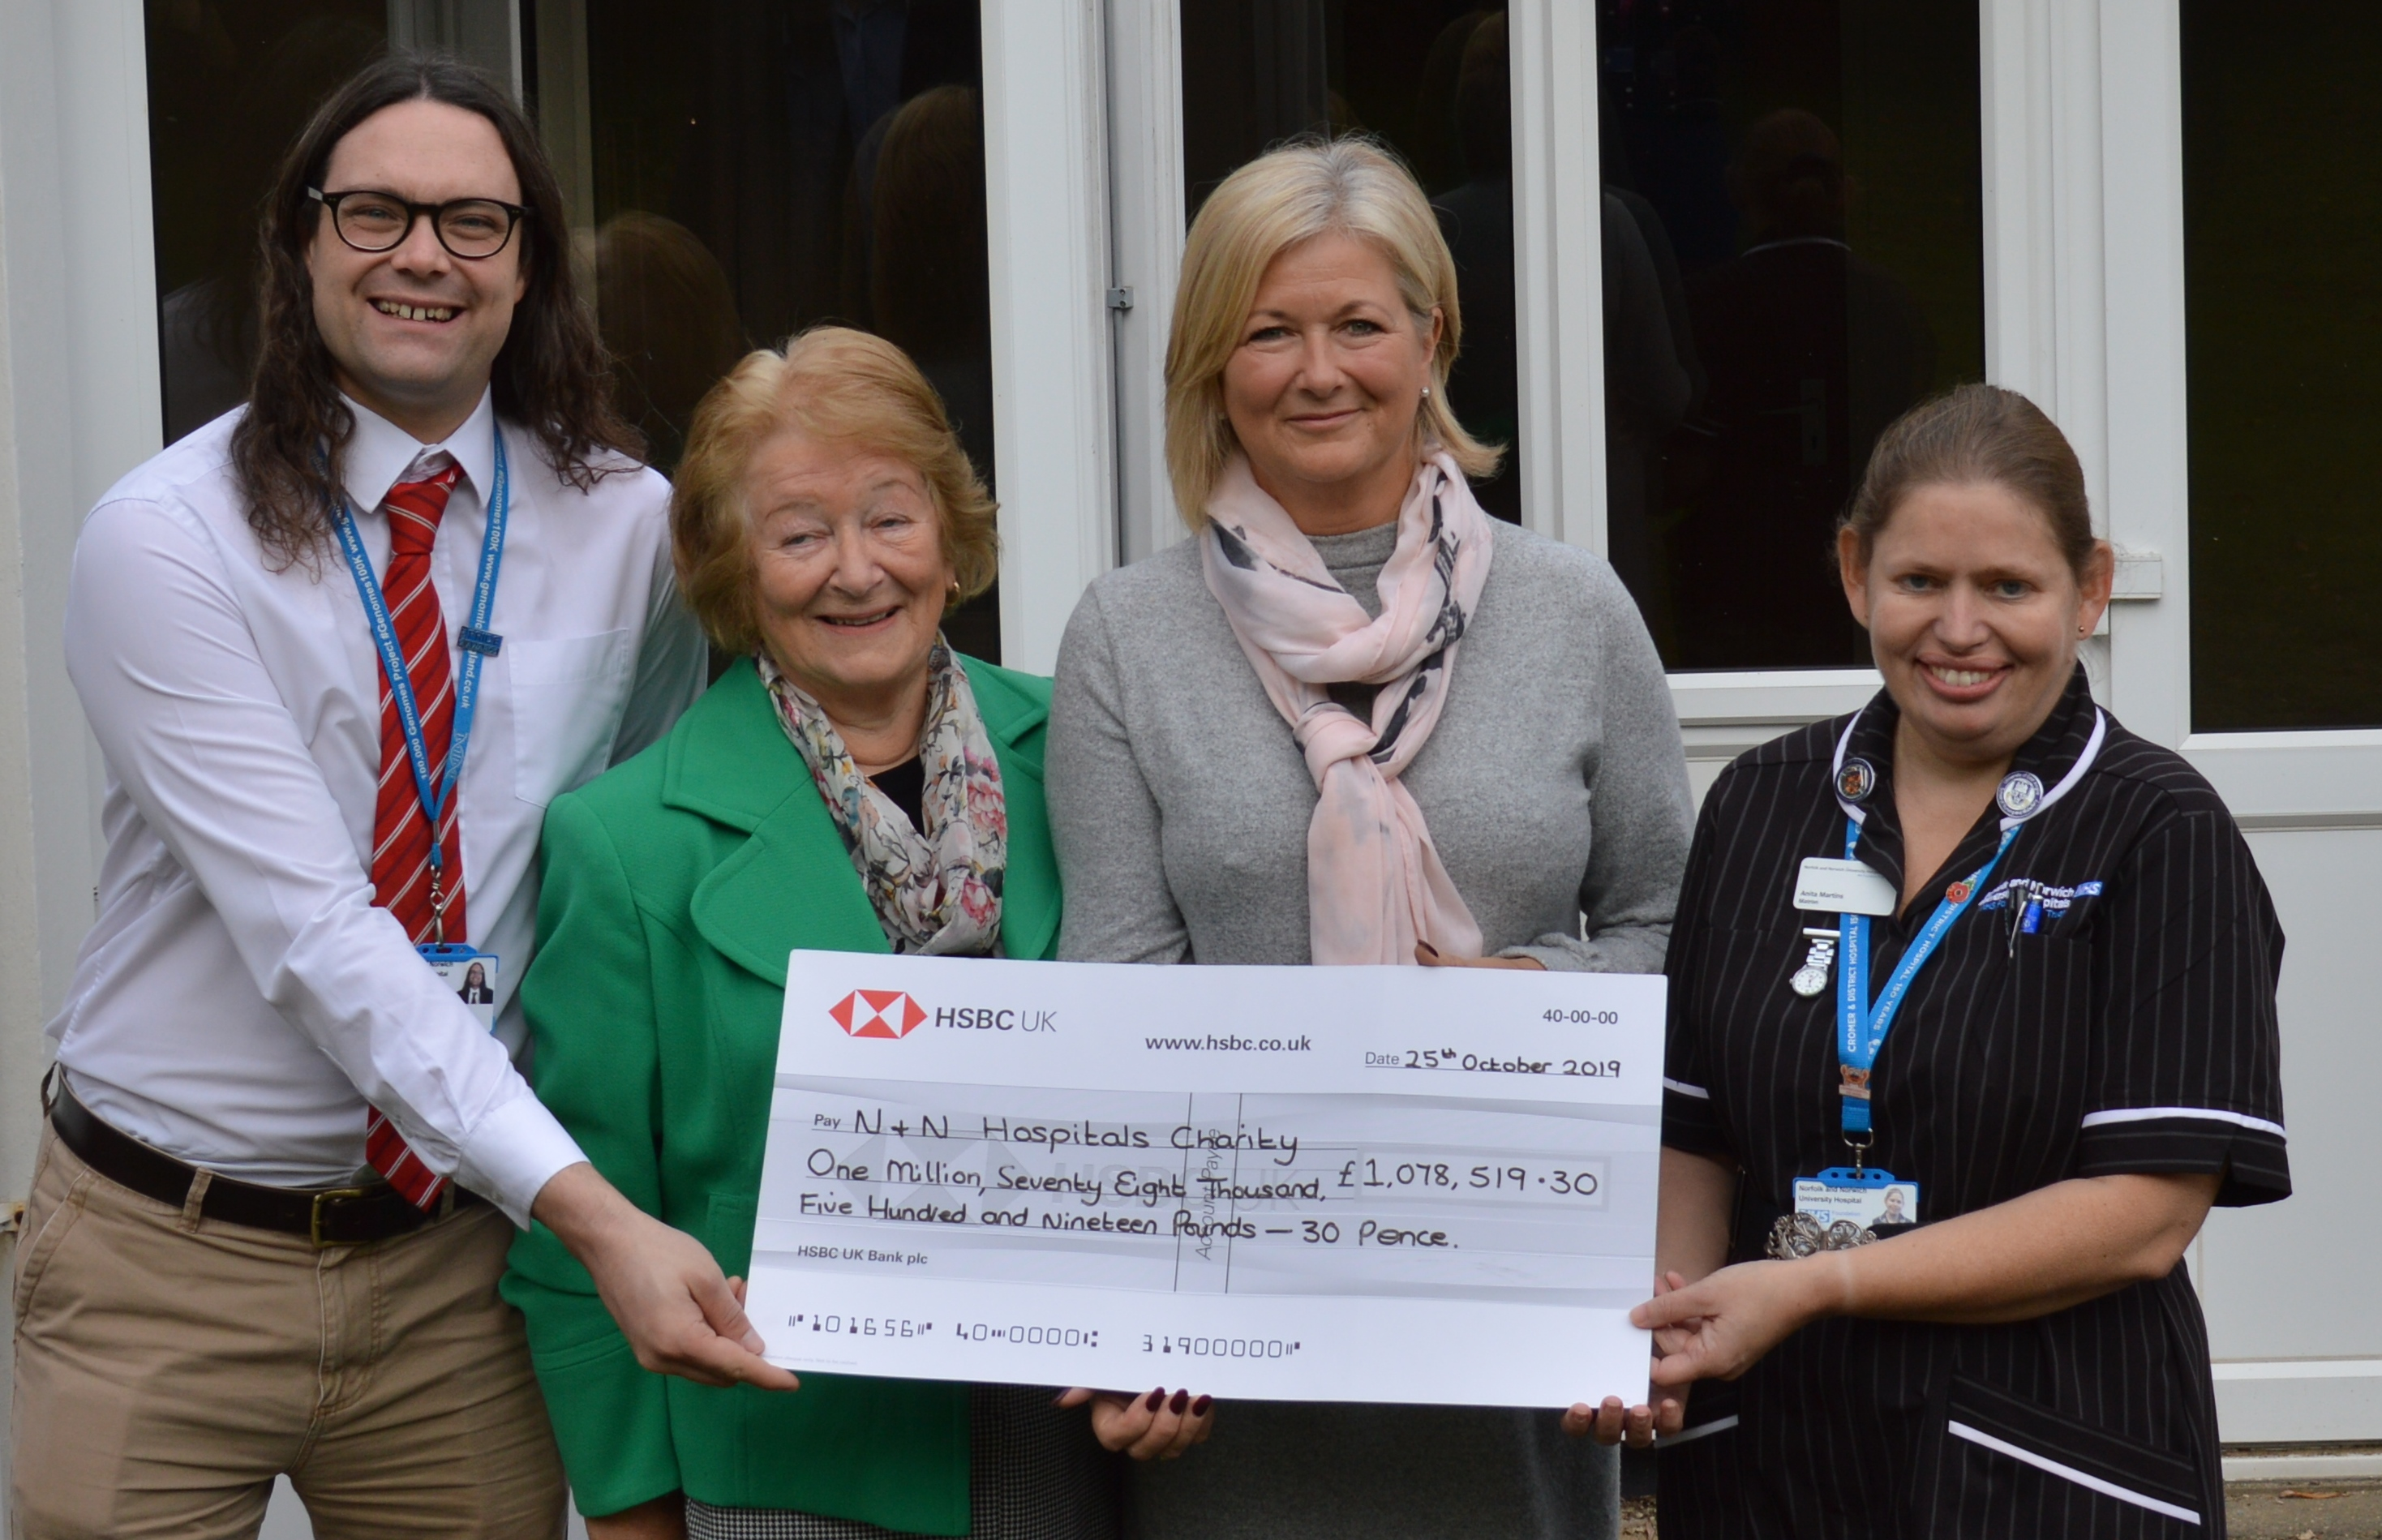 Cromer Hospital receives £1m legacy